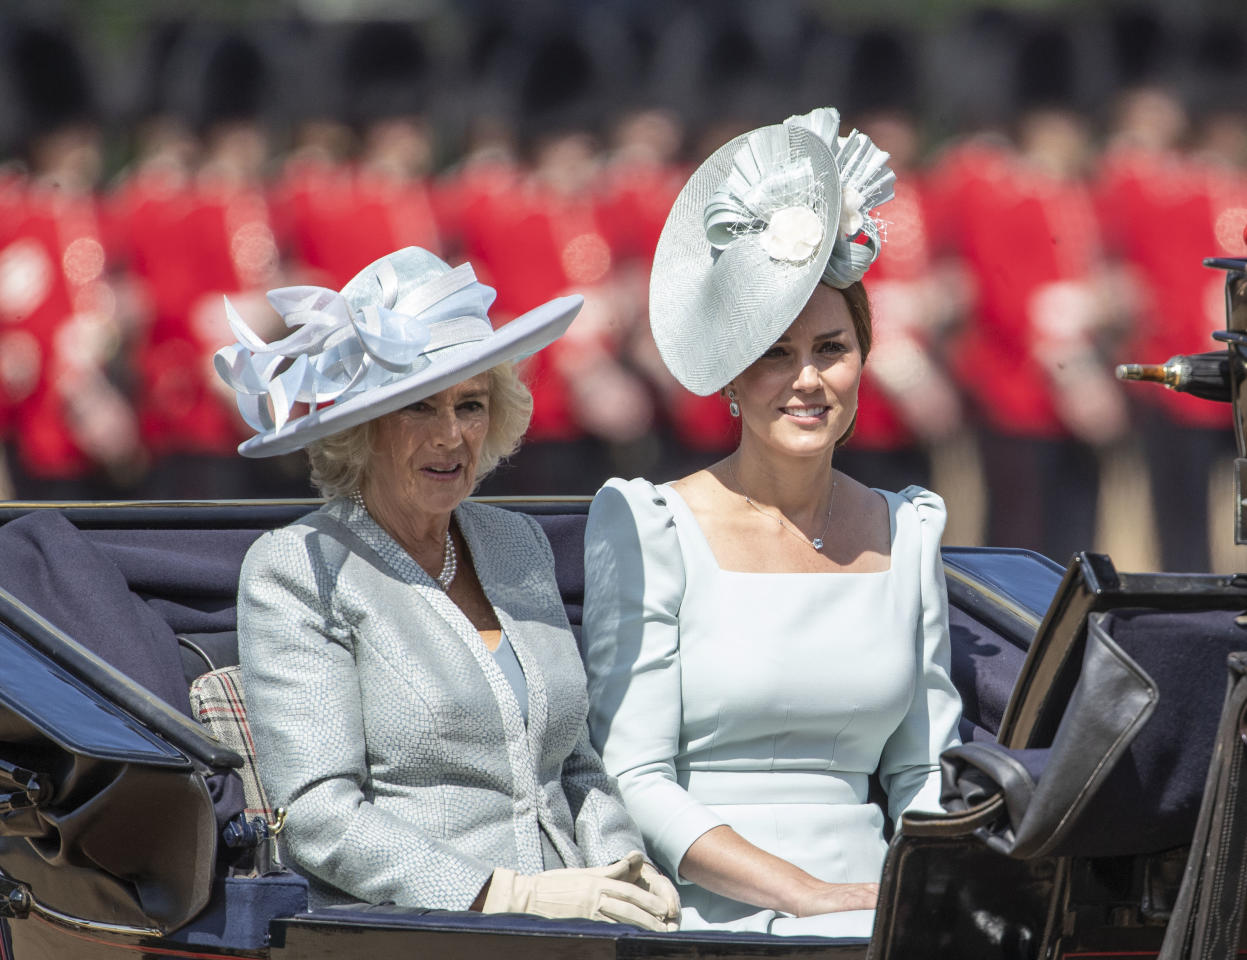 <p>Riding side by side for the 2018 Trooping the Colour, the Duchess of Cambridge and Duchess of Cornwall were perfectly matched in ice blue outfits and hats. Kate opted for an Alexander McQueen dress with a decorative Juliette Botterill hat, while Camilla wore a silk dress and coat by Bruce Oldfield and a hat by Philip Treacy.<br />Photo: Getty </p>